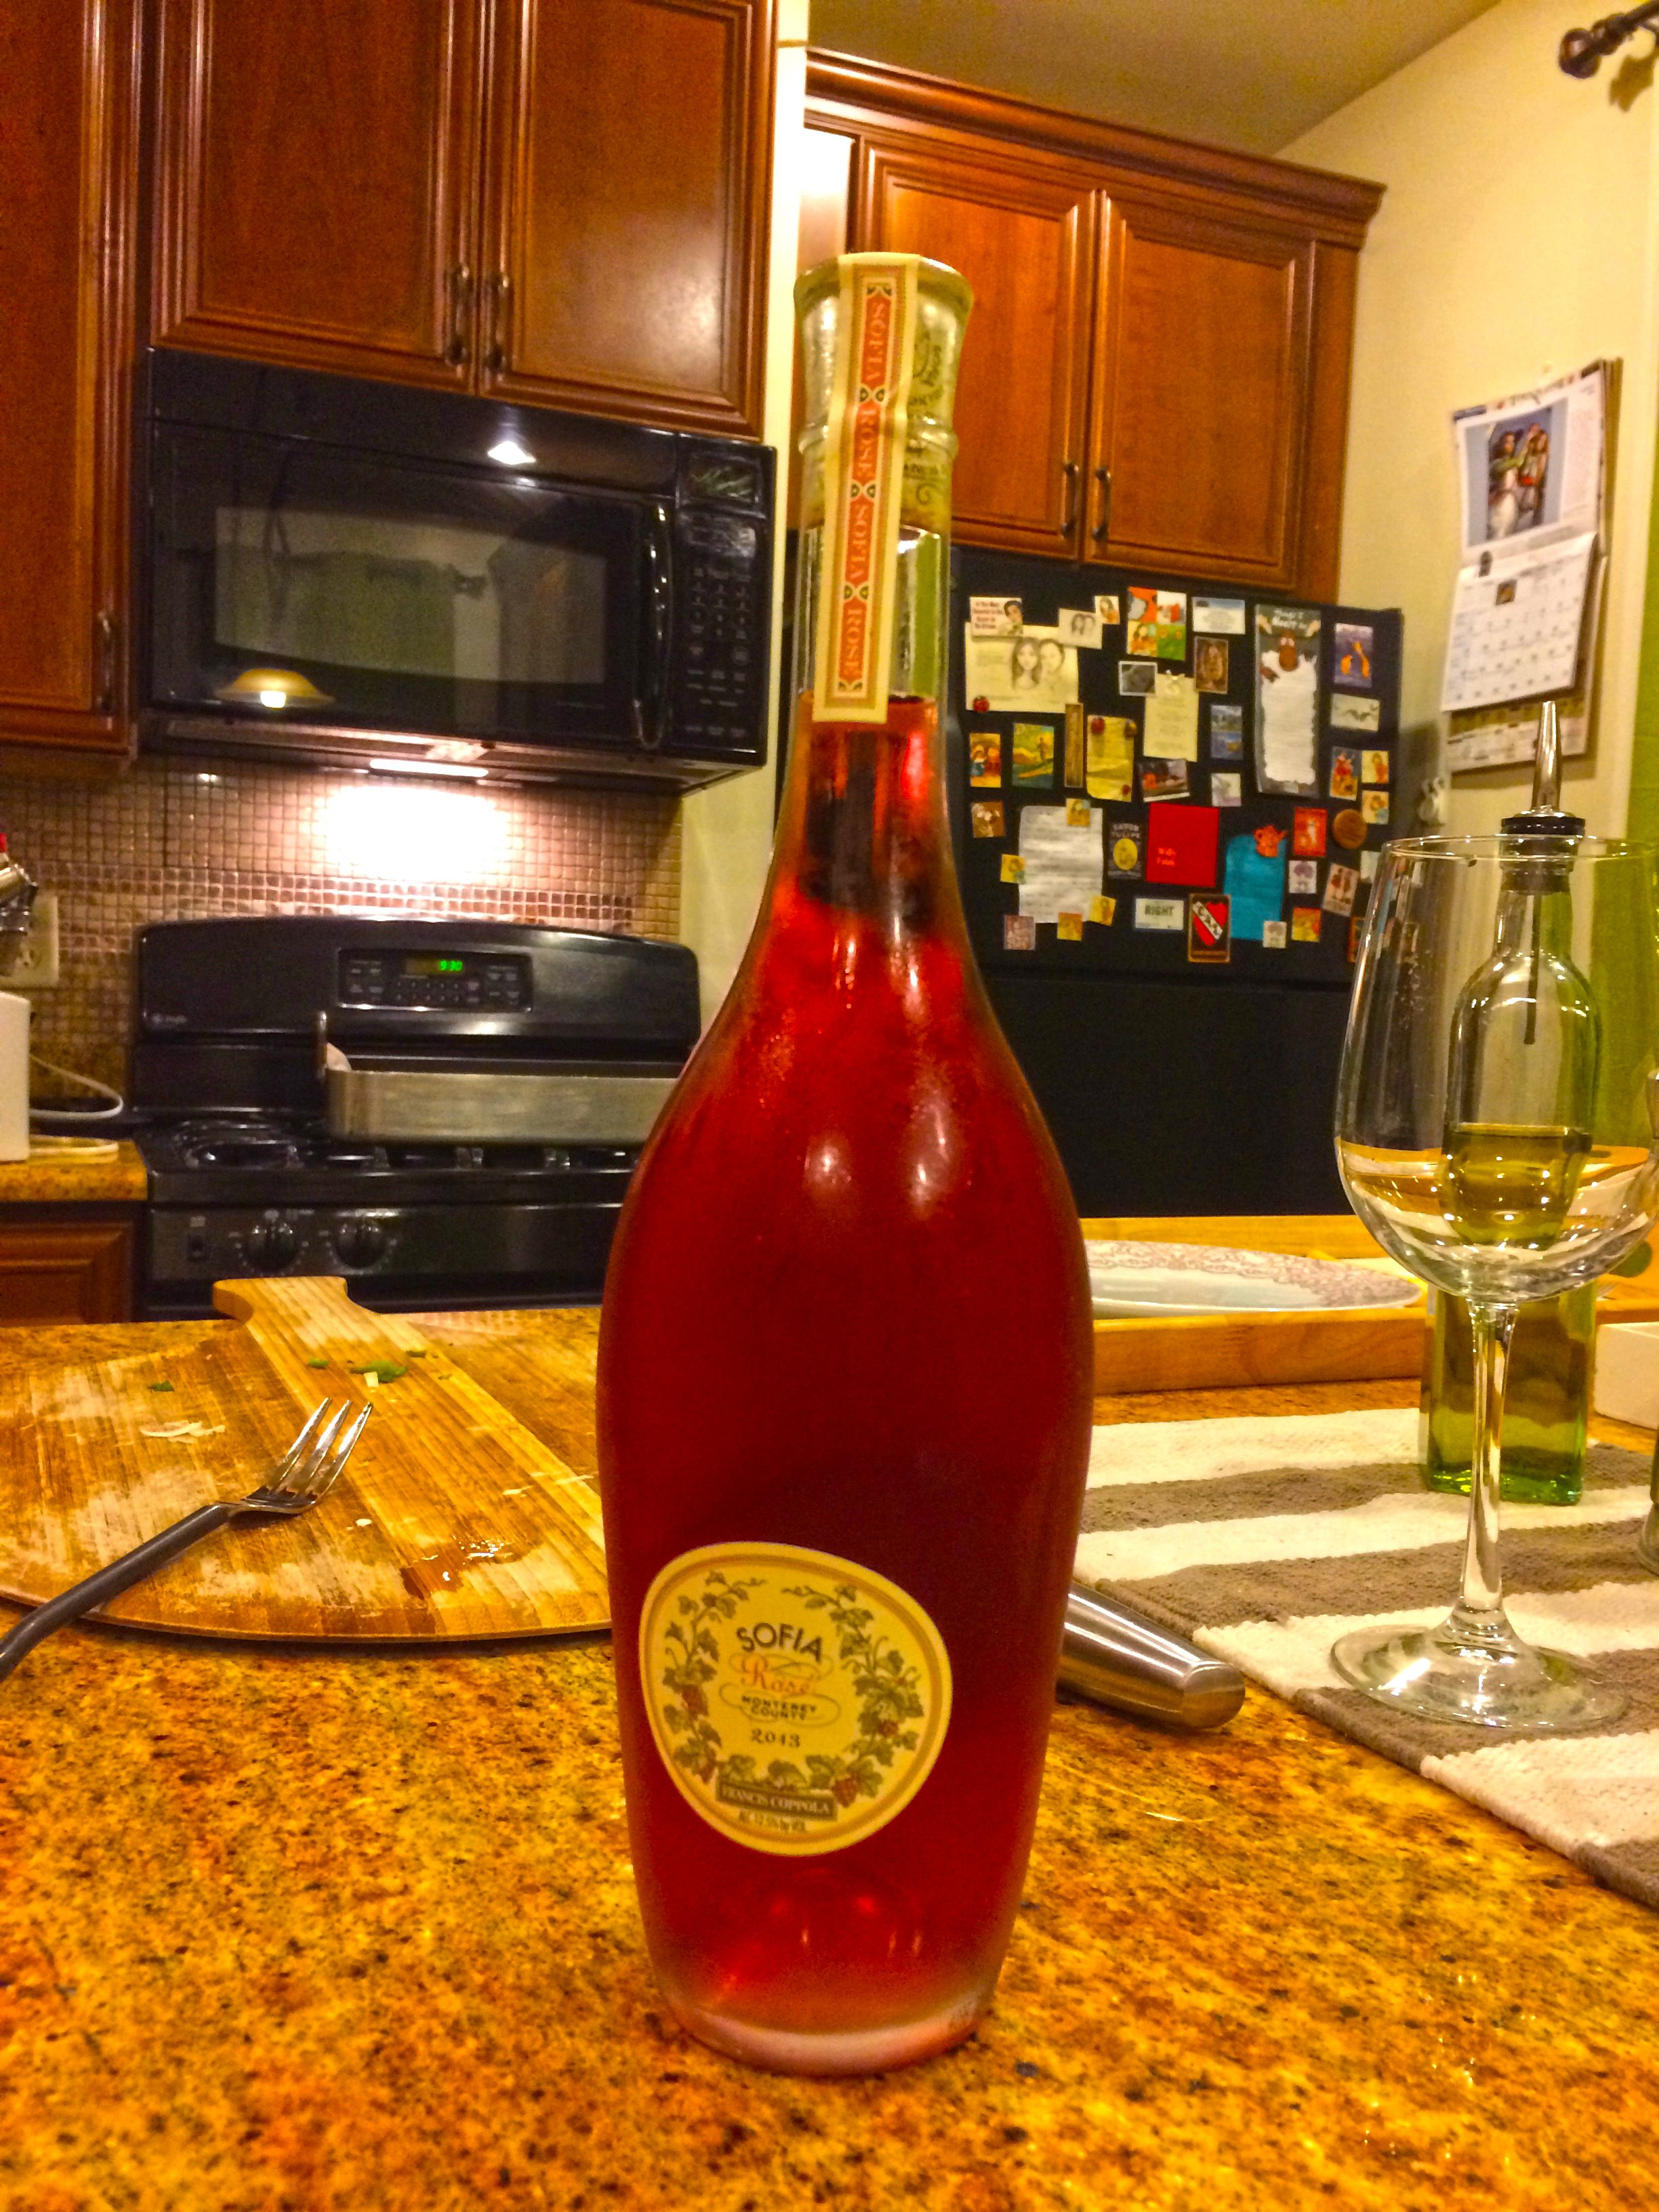 I Cooked A Few Branzinos European Seabass And We Opened A Sofia Rose Excellent Little Wine This Stylish Rose Is Produced By Francis Sea Bass Hot Sauce Bottles Sofia Rose